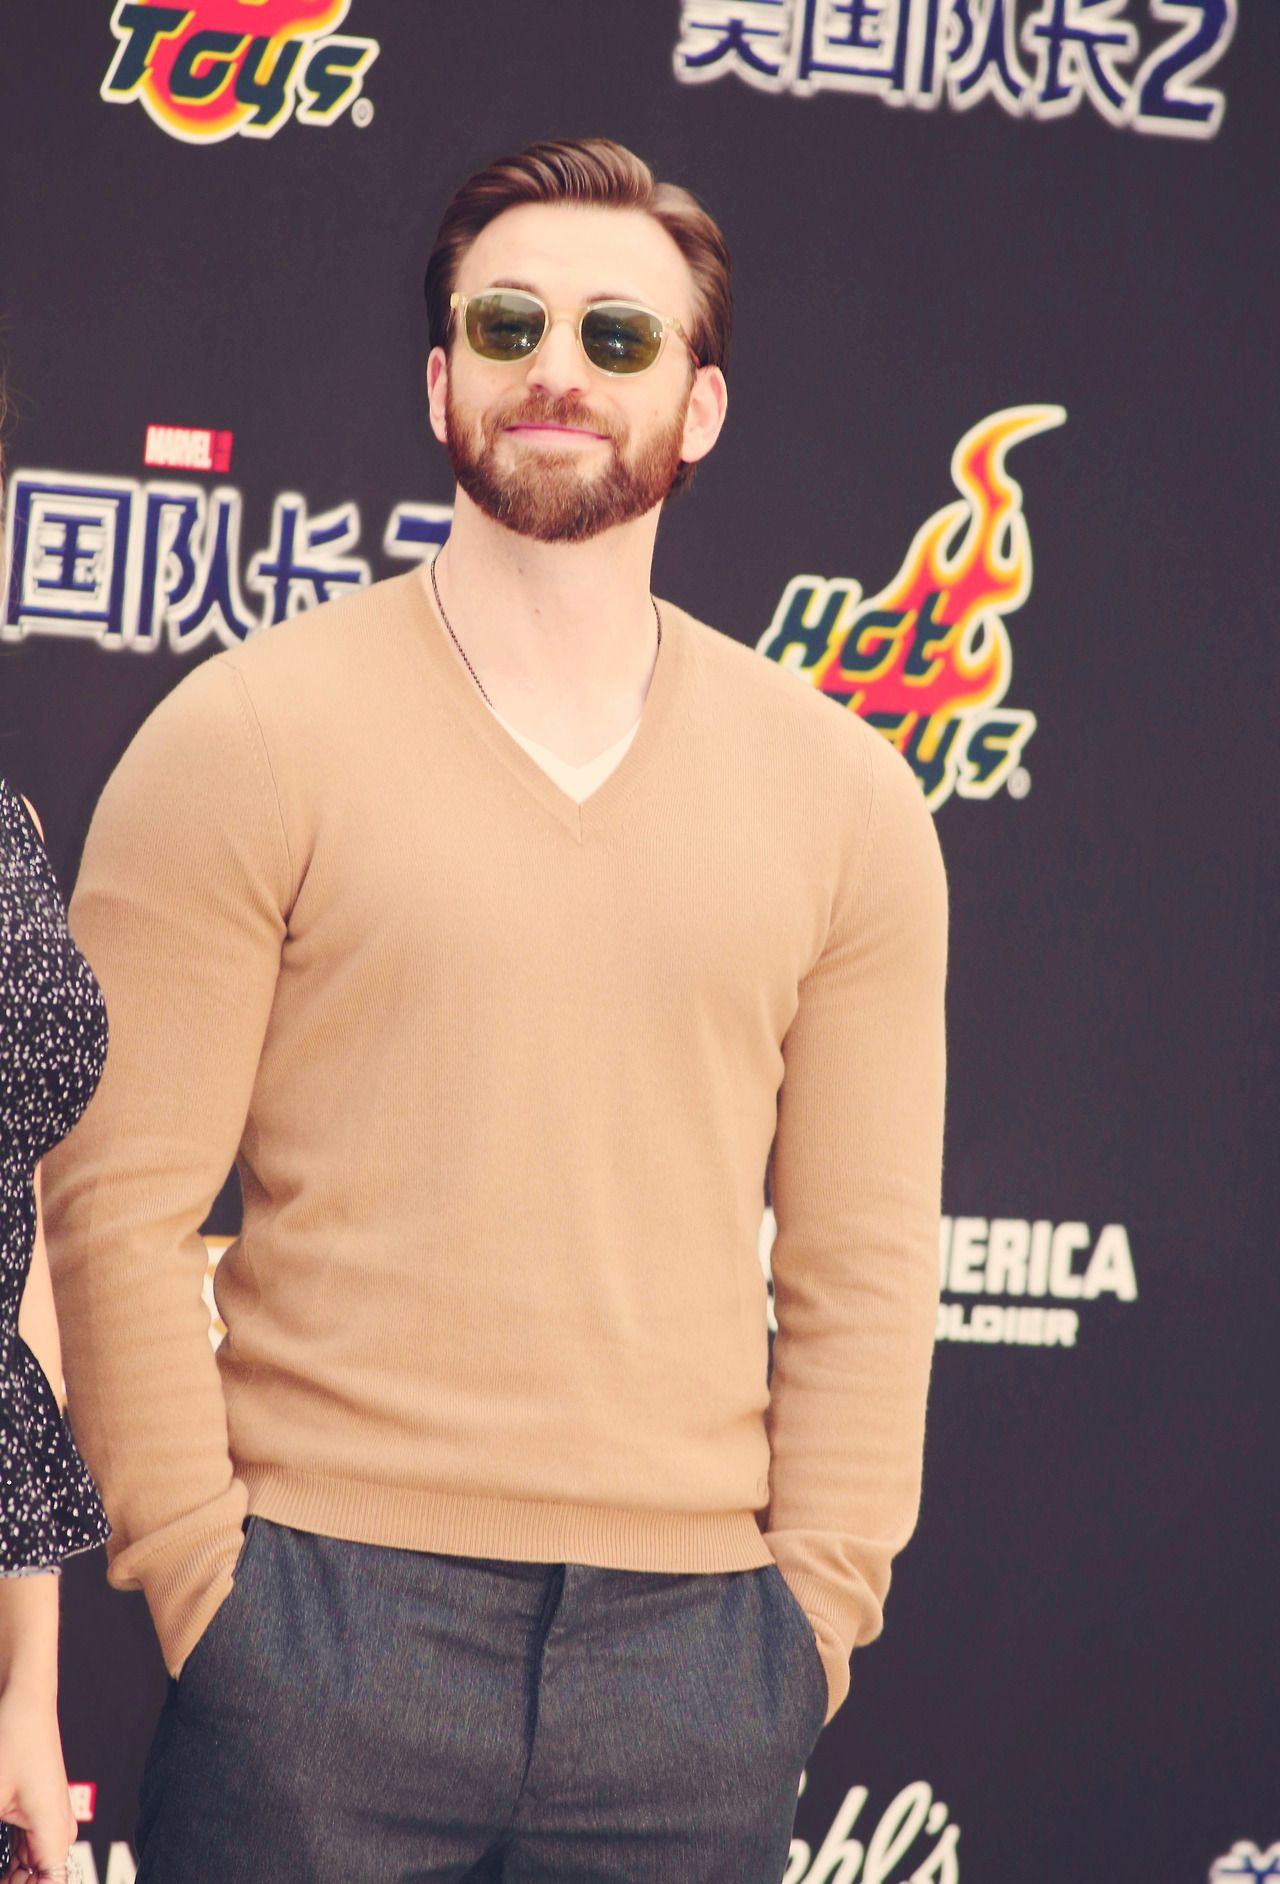 Chris Evans at Beijing premiere of CATWS